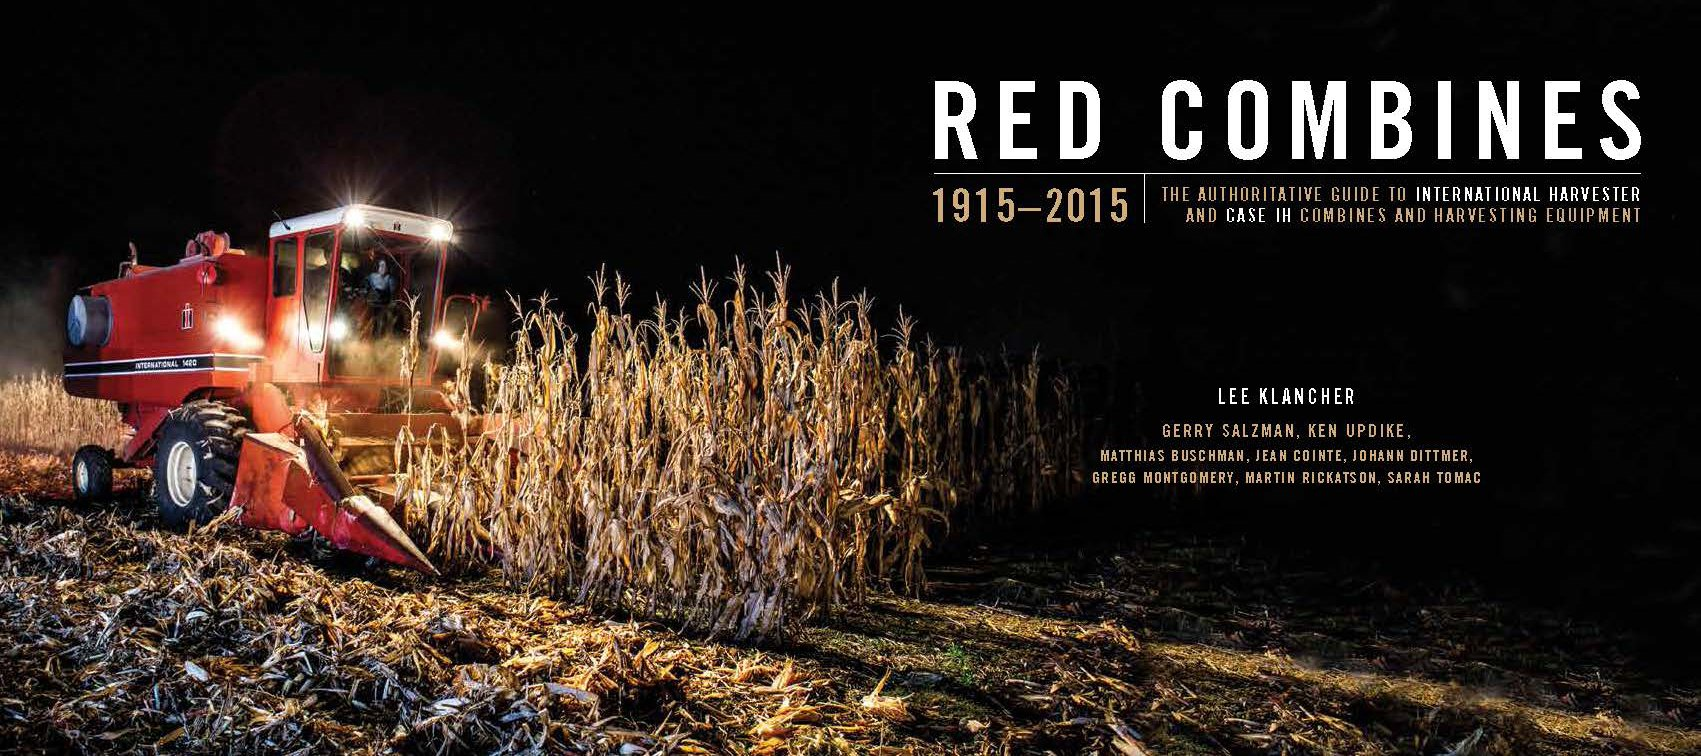 Red Combines 1915-2015: The Authoritative Guide to International Harvester and Case IH Combines and Harvesting Equipment by Octane Press LLC (Image #3)